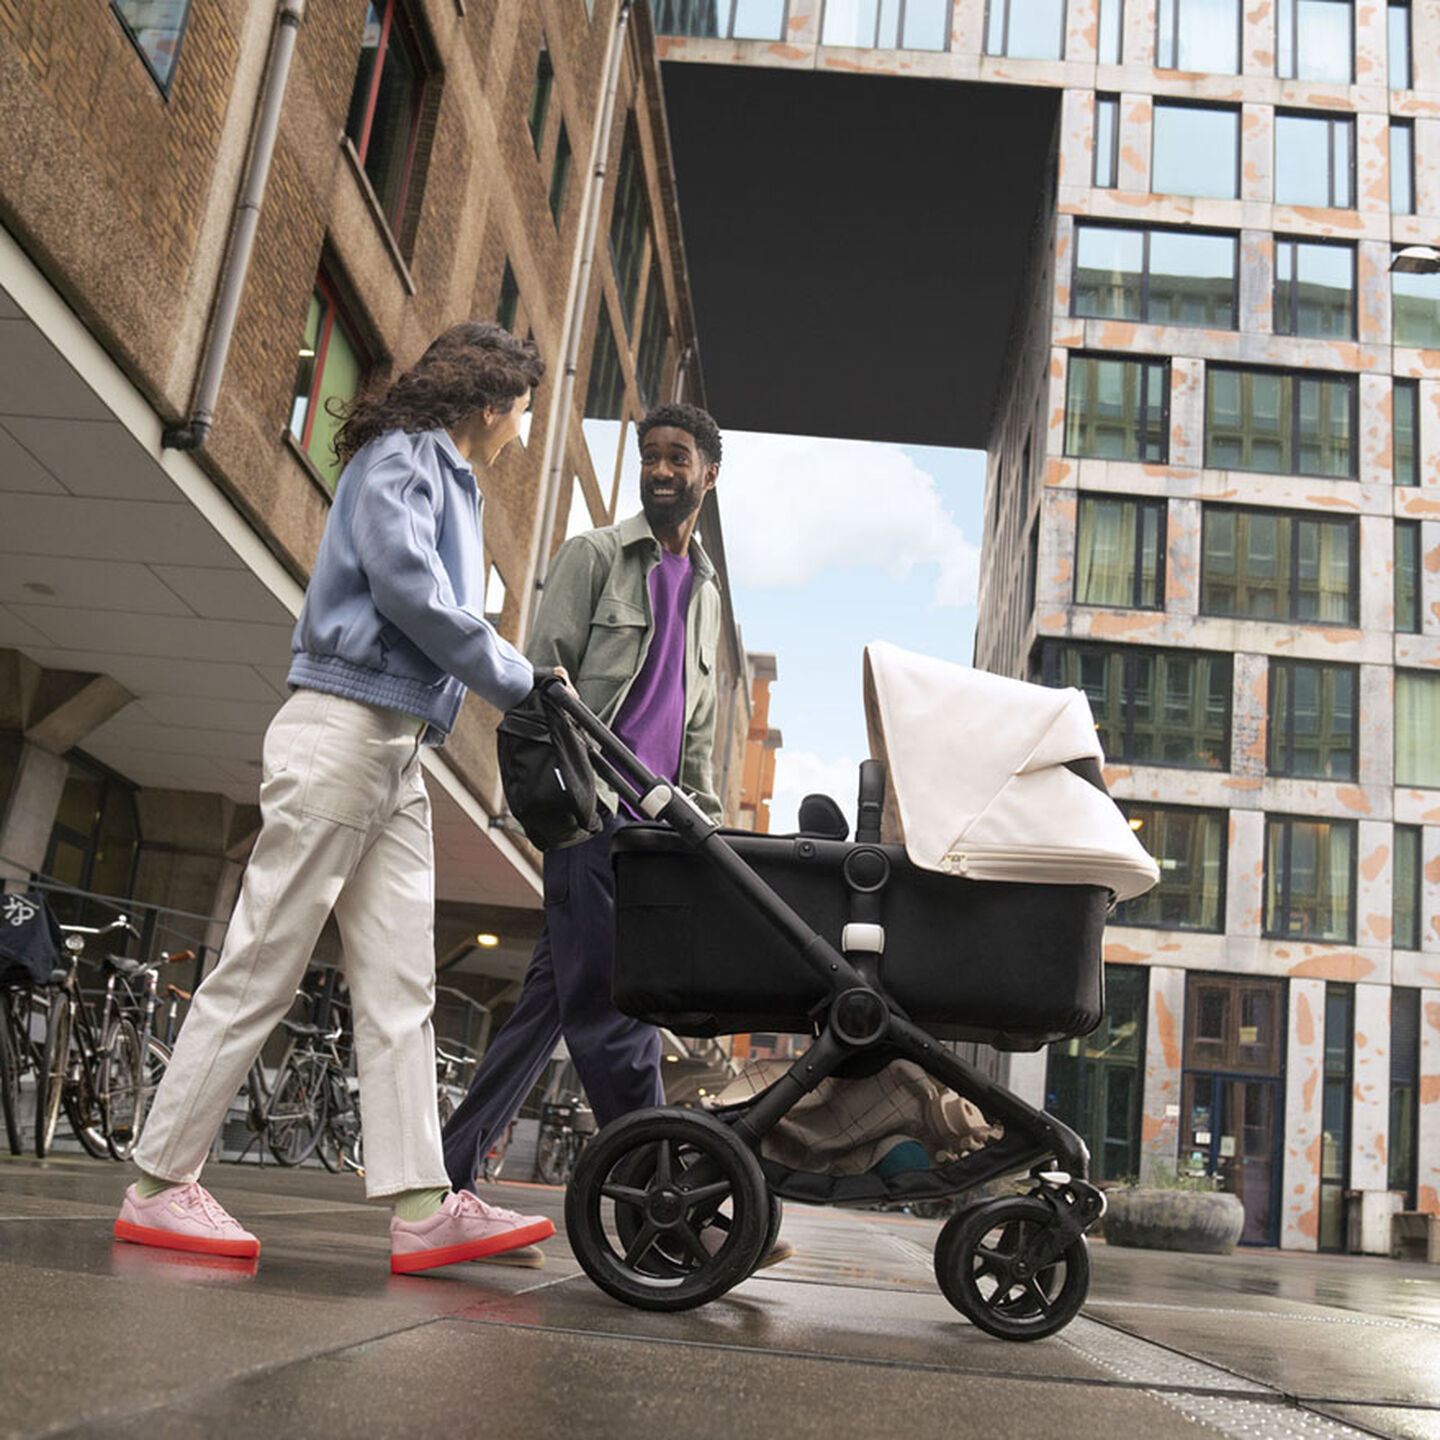 Man and woman with stroller in city